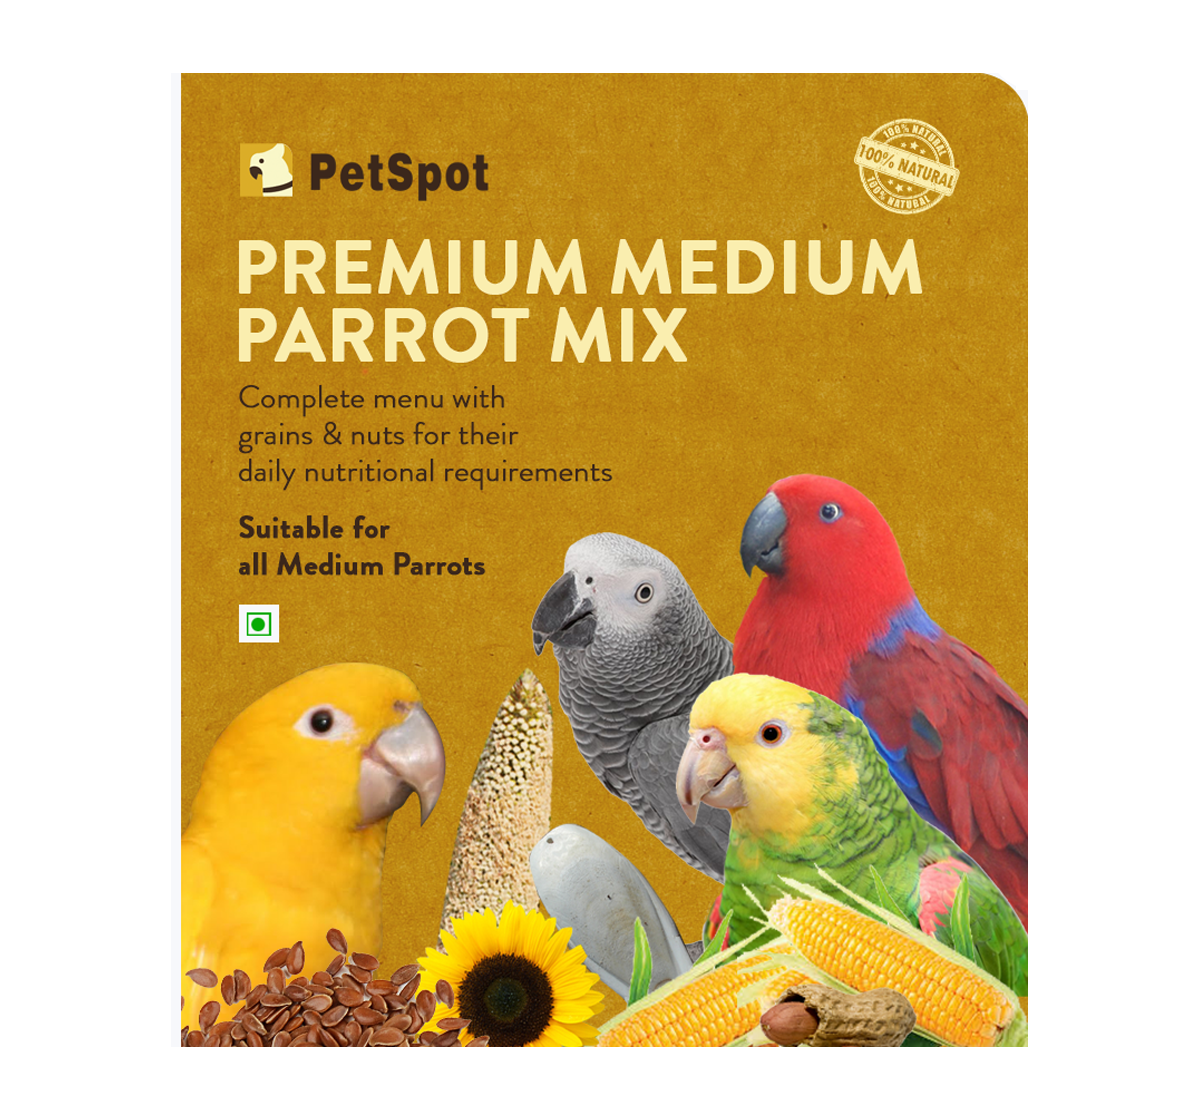 PetSpot Premium Medium Parrot Mix - 800 gm